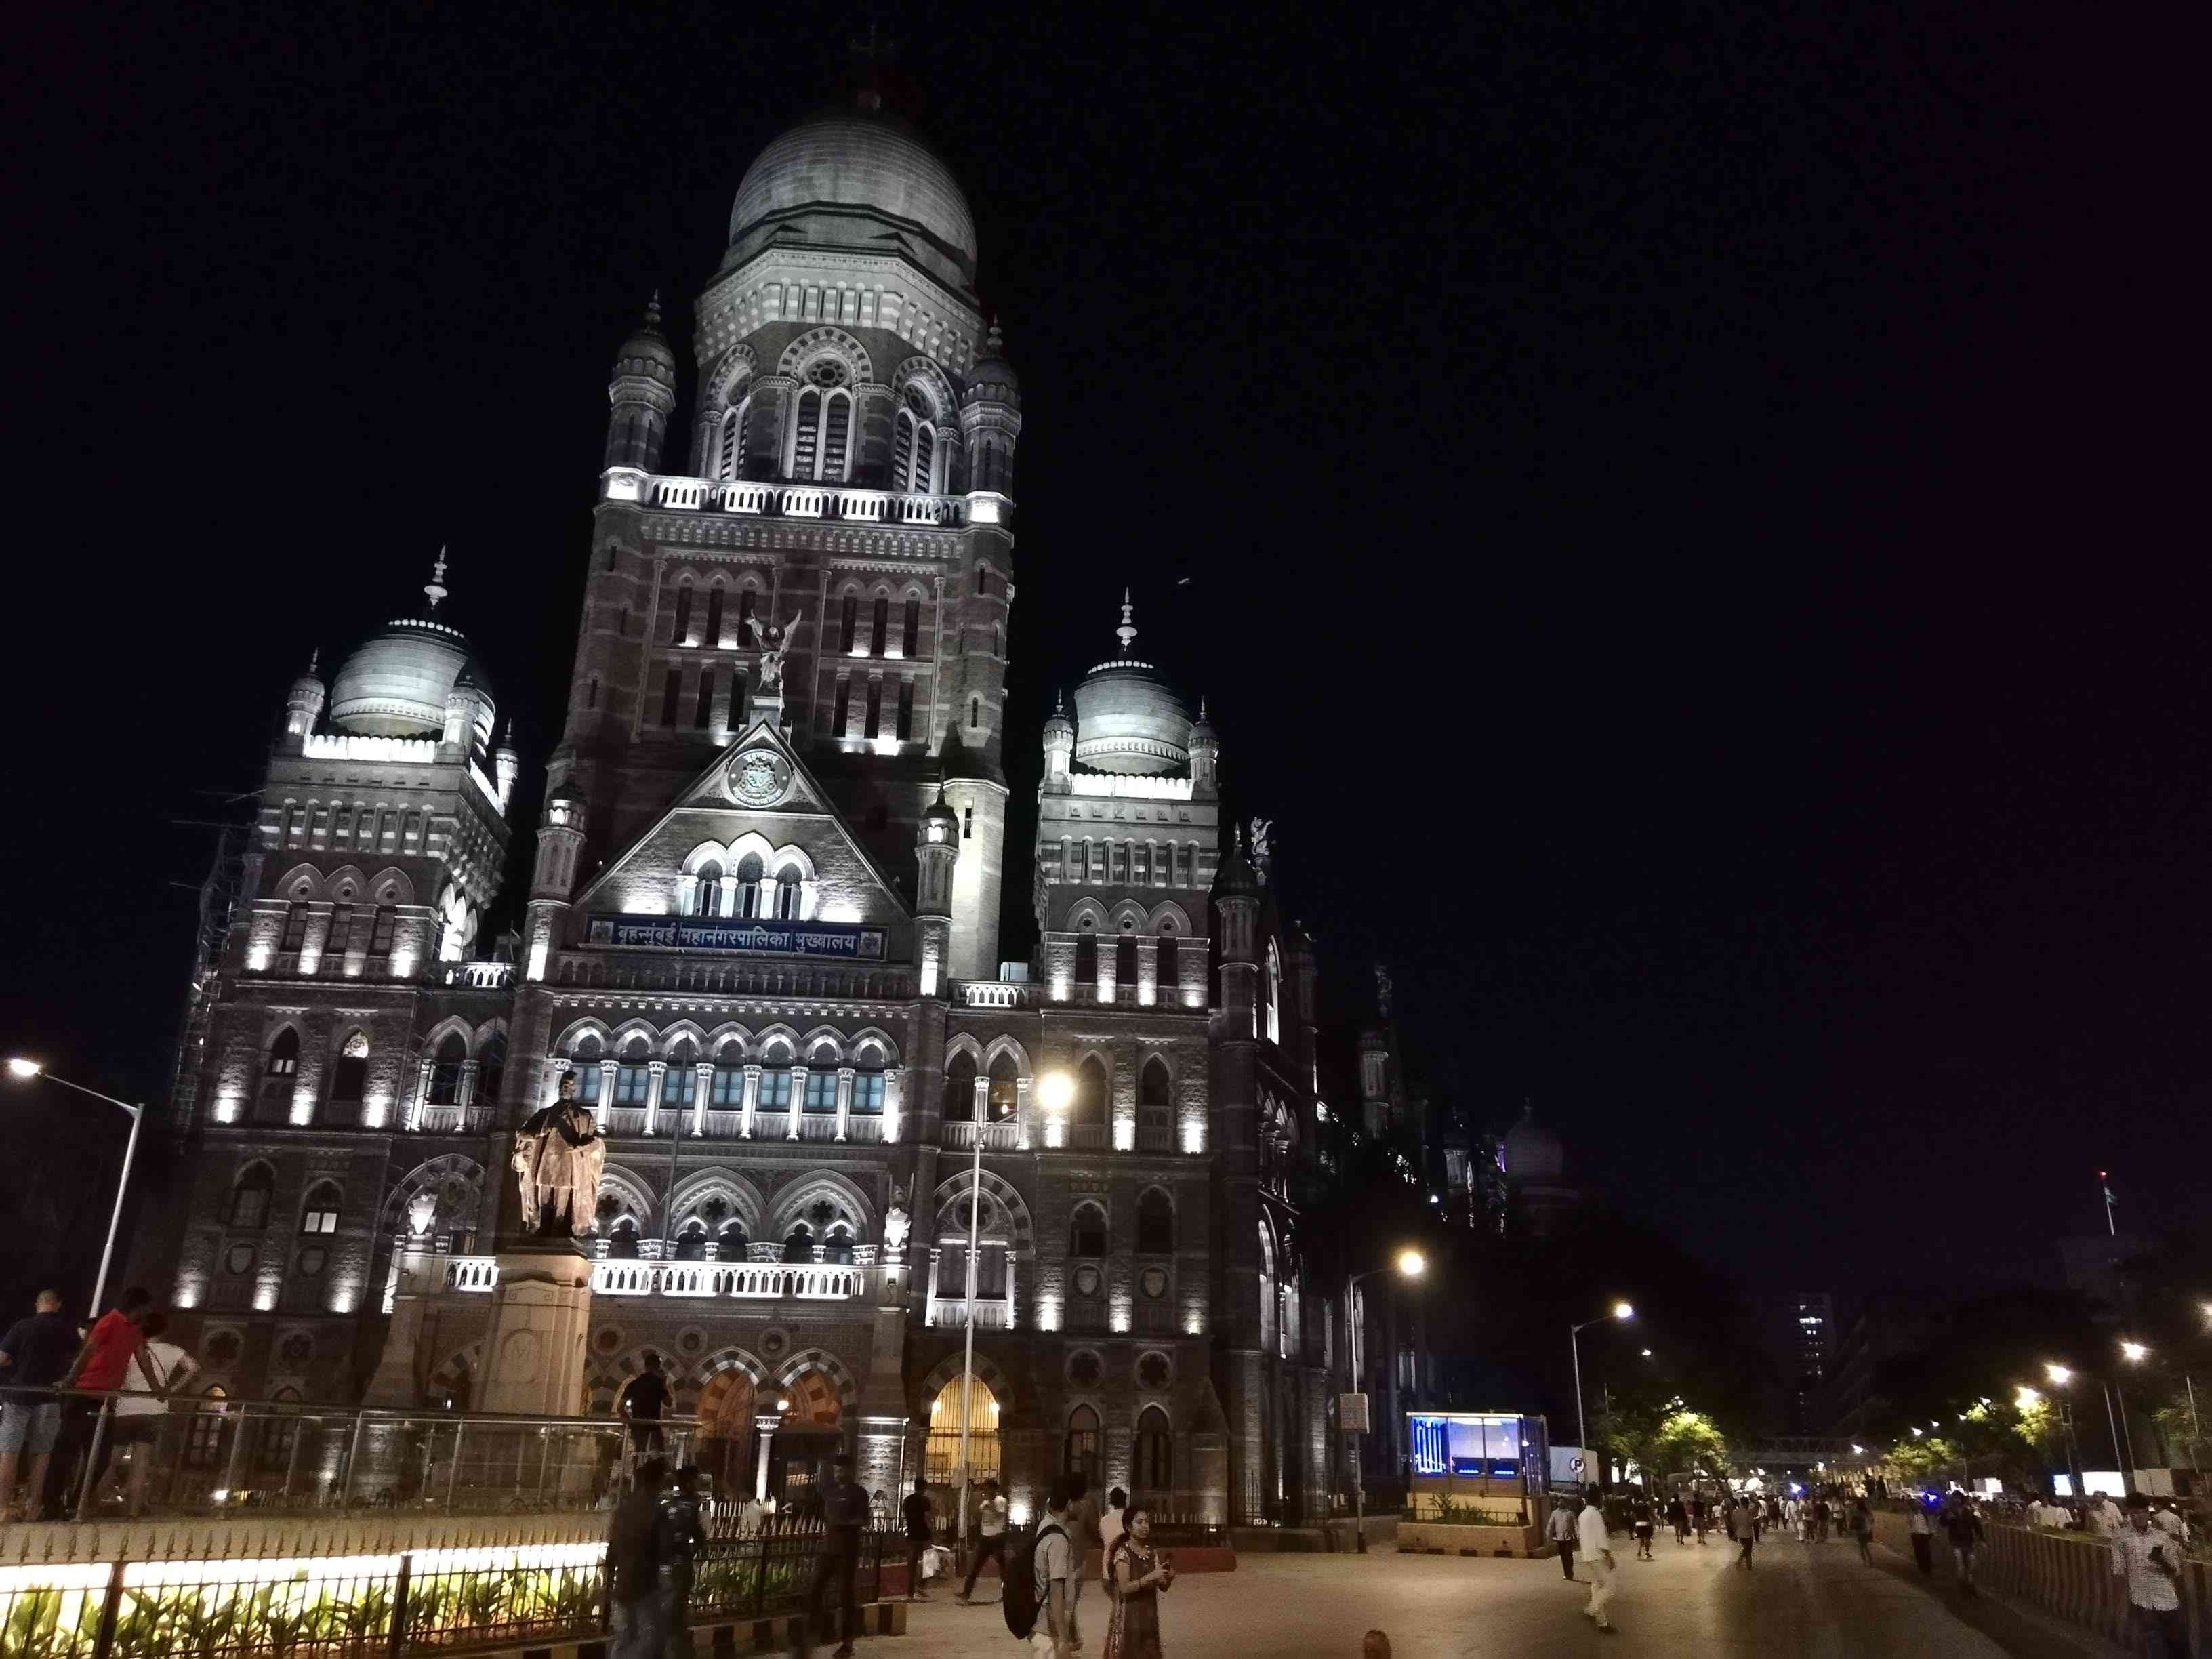 The headquarters of Mumbai's municipal corporation is just 100 metres away from the collapsed bridge, which is just visible to the right. Photo: Mridula CHari